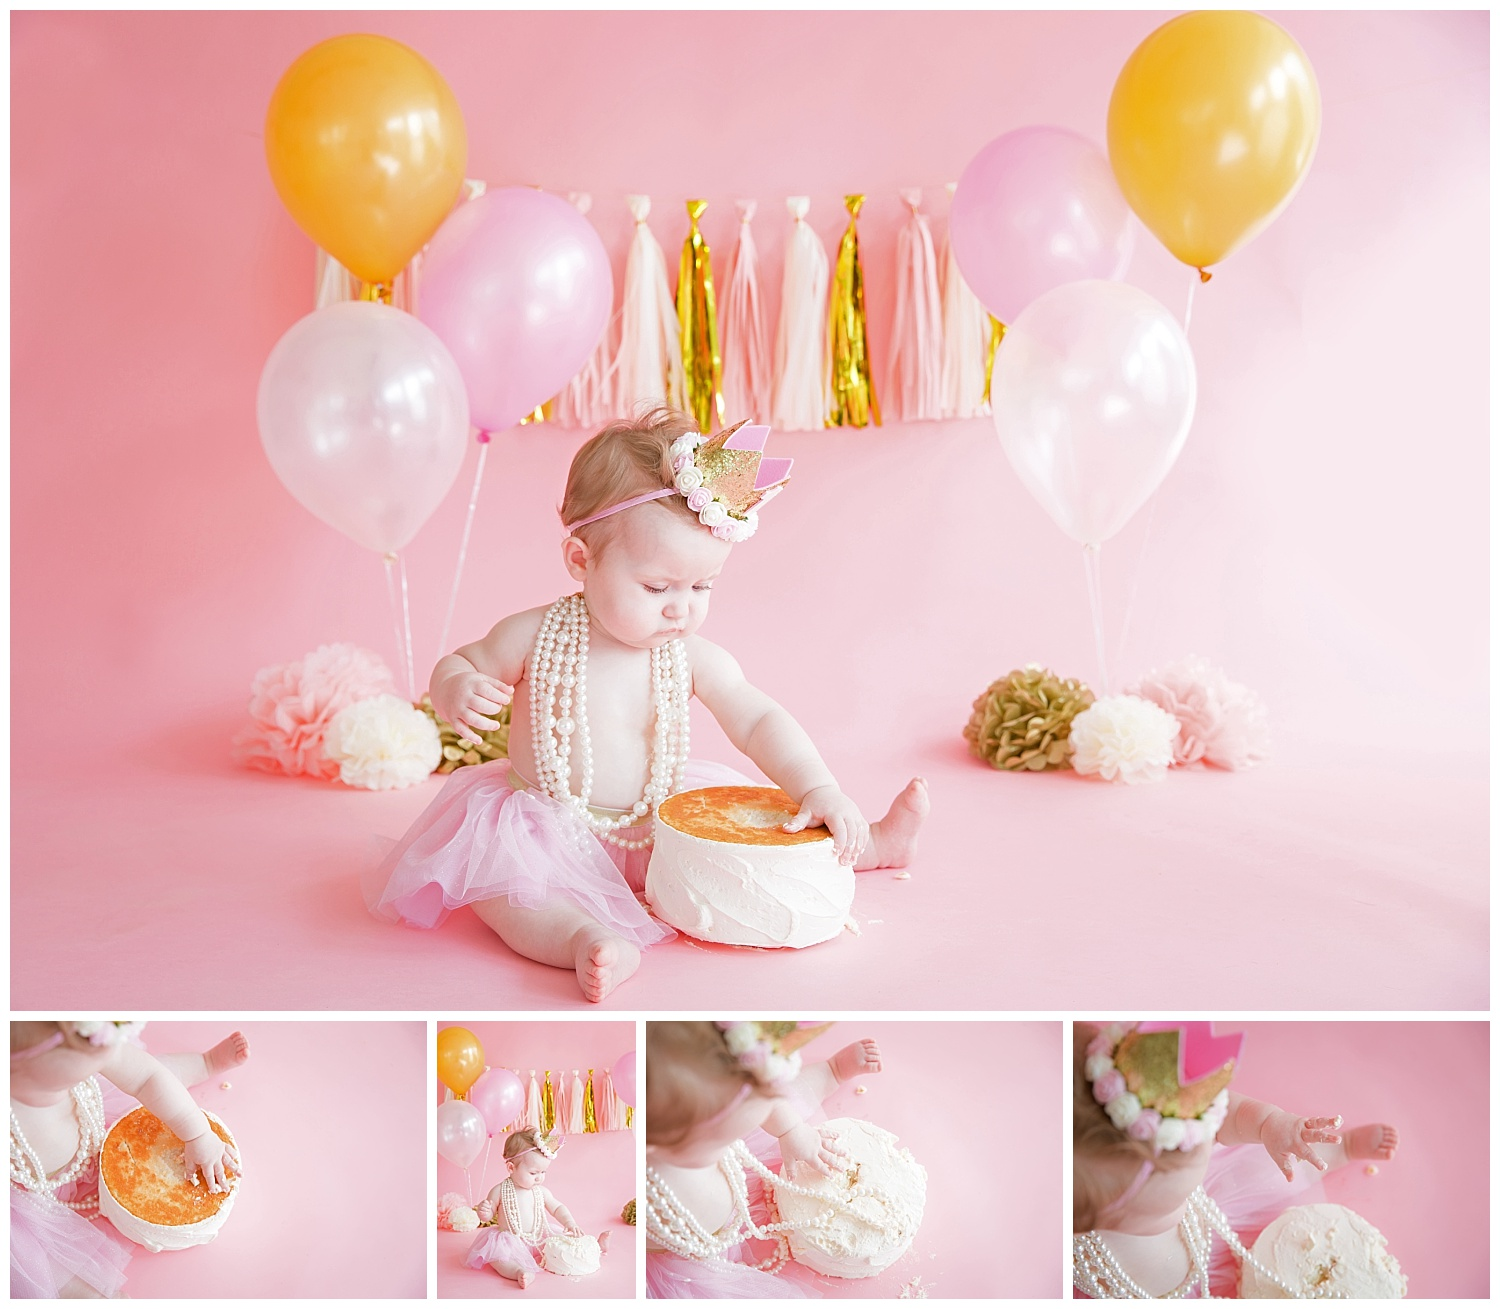 baby girl playing with her white cake for her birthday photos